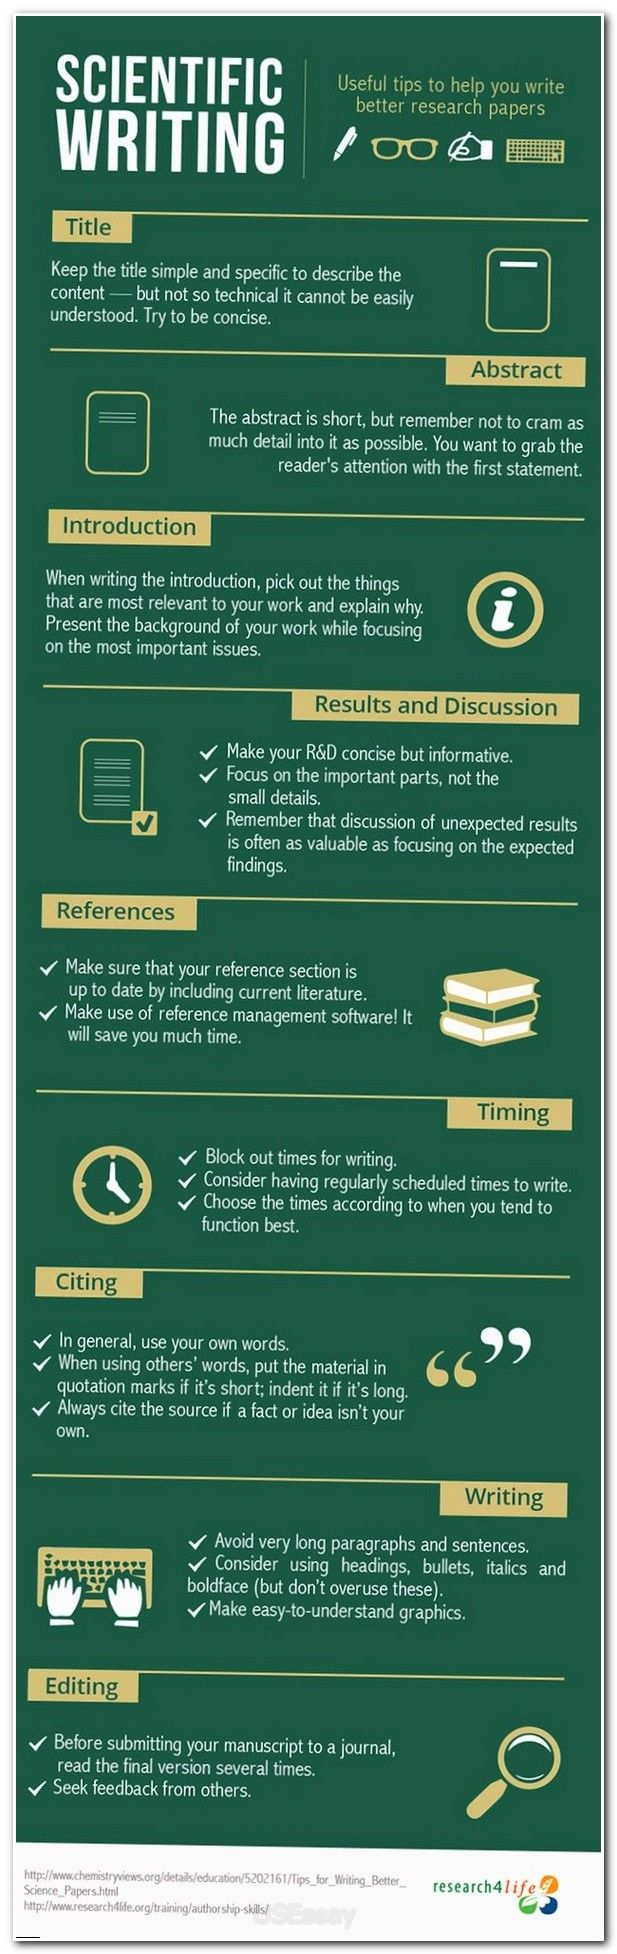 #essay #essaytips what is dissertation proposal, term paper and research paper, easy essay topics, good argument paper topics, topics on expository essay, good application essays, reflection paper essay, effective argument essay, how to write an imaginative story, factual essay, website that will write an essay for you, a short speech on music, sample of research article, personal statement examples for nursing school, simple writing prompts